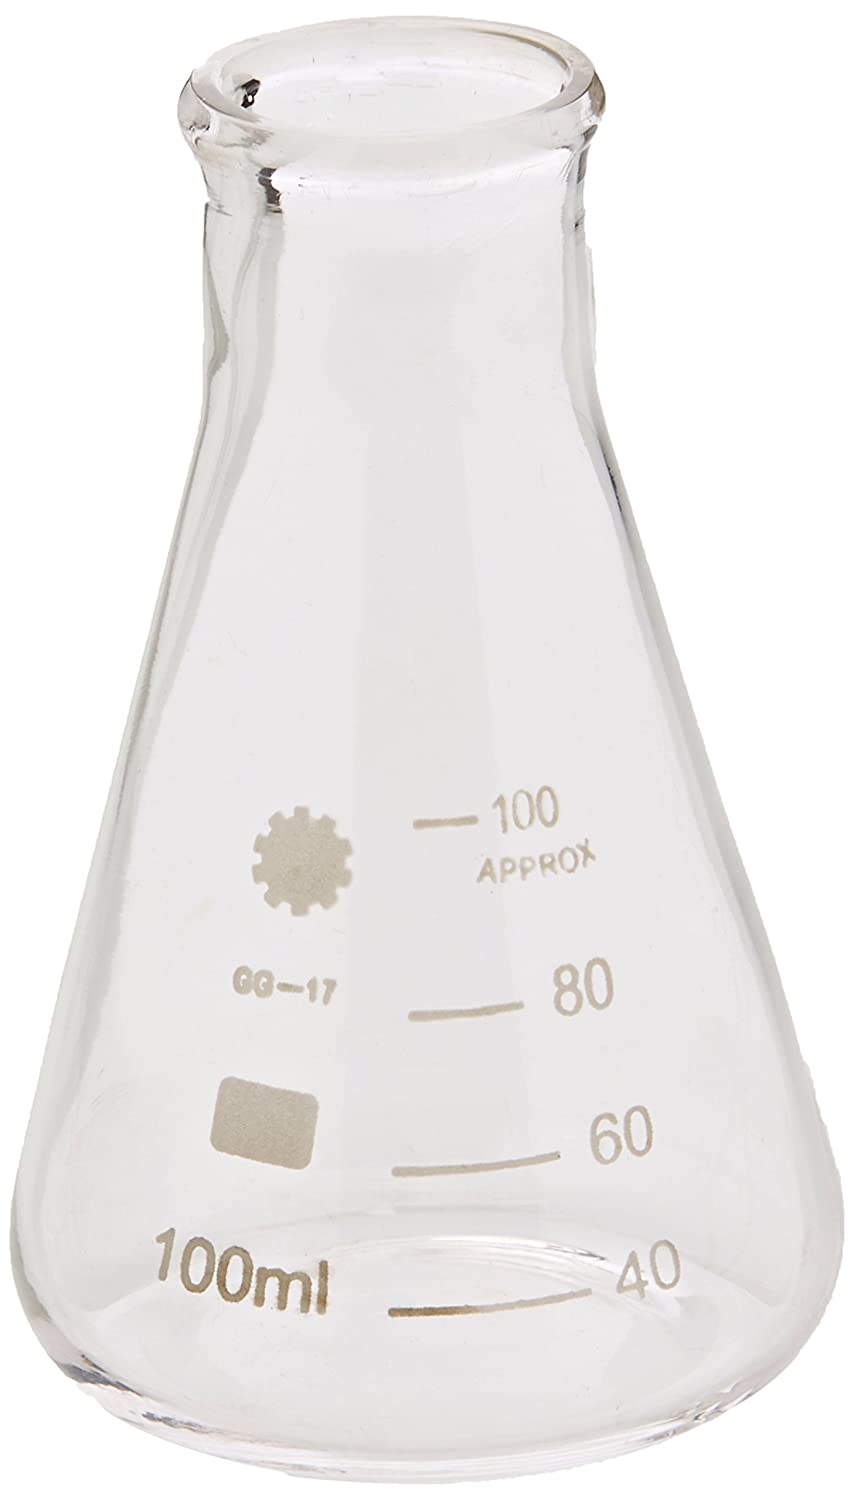 Ajax Scientific GL025-0100 Erlenmeyer Narrow Mouth Flask with Graduated and Marking Spot, 100 mL Ajax Scientific Ltd